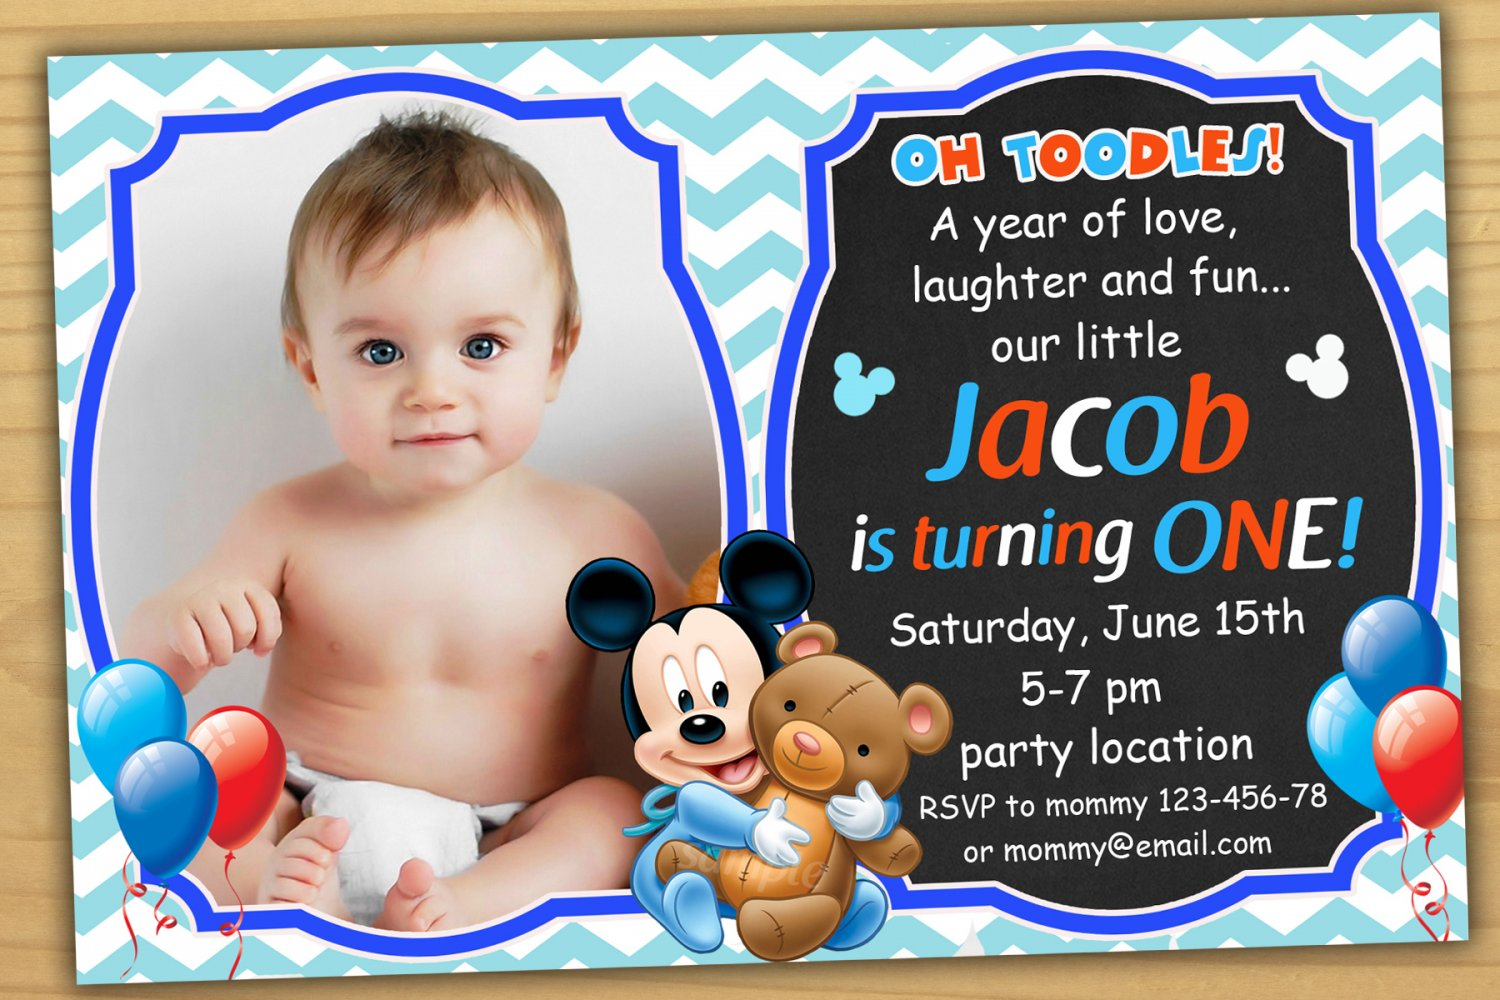 Baby mickey mouse invitationmickey mouse first birthday invitation baby mickey mouse invitationmickey mouse first birthday invitationbaby mickey mouse invitations filmwisefo